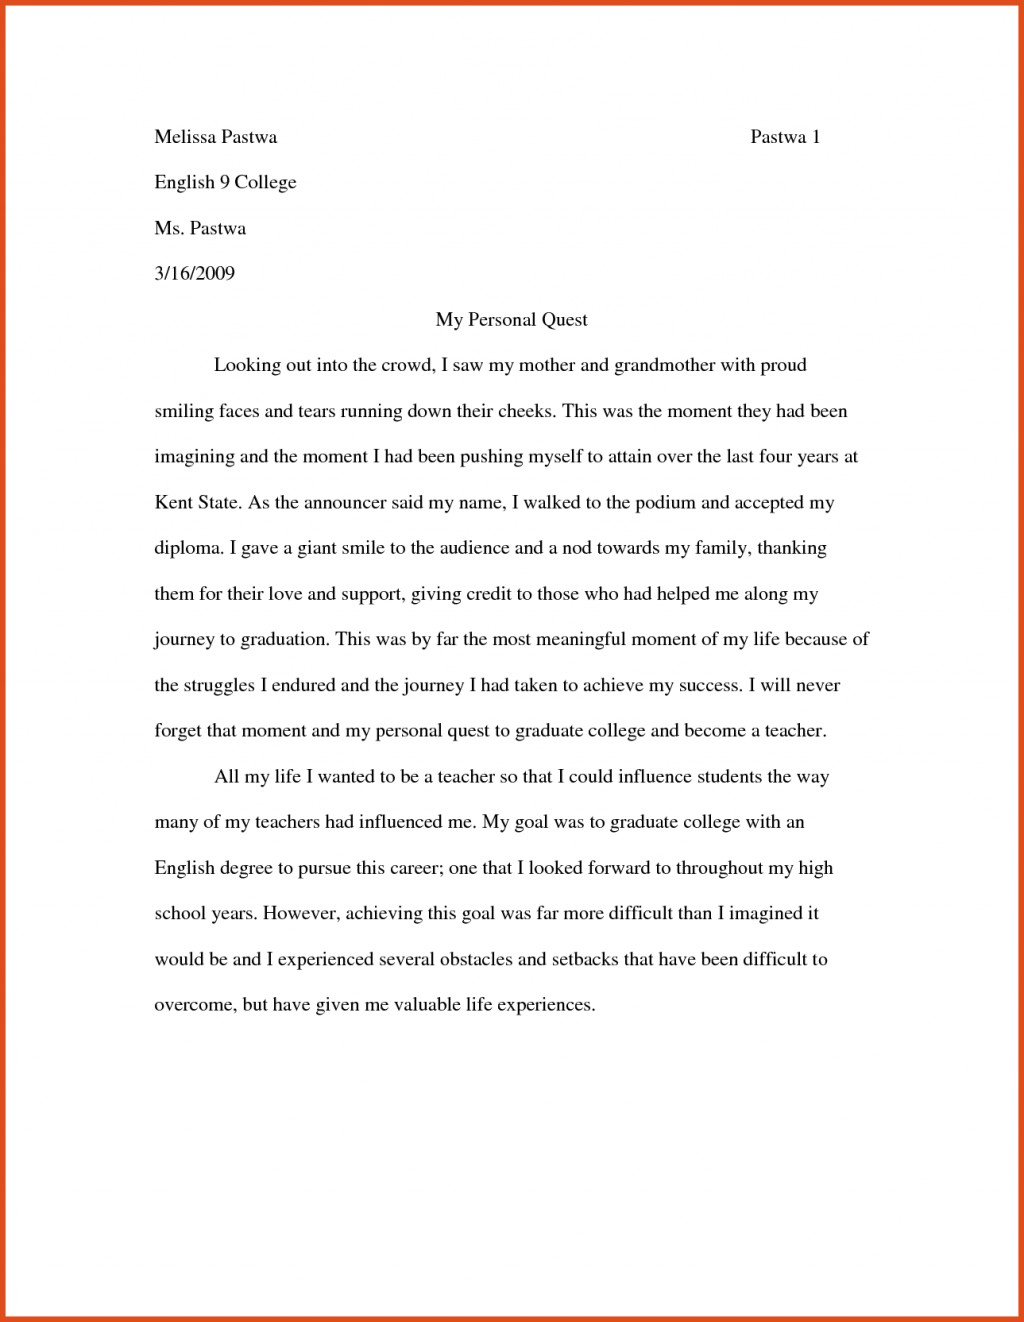 006 1195141190 College Essay Community Service Example Top Writing Reviews Admission Professional Services Large